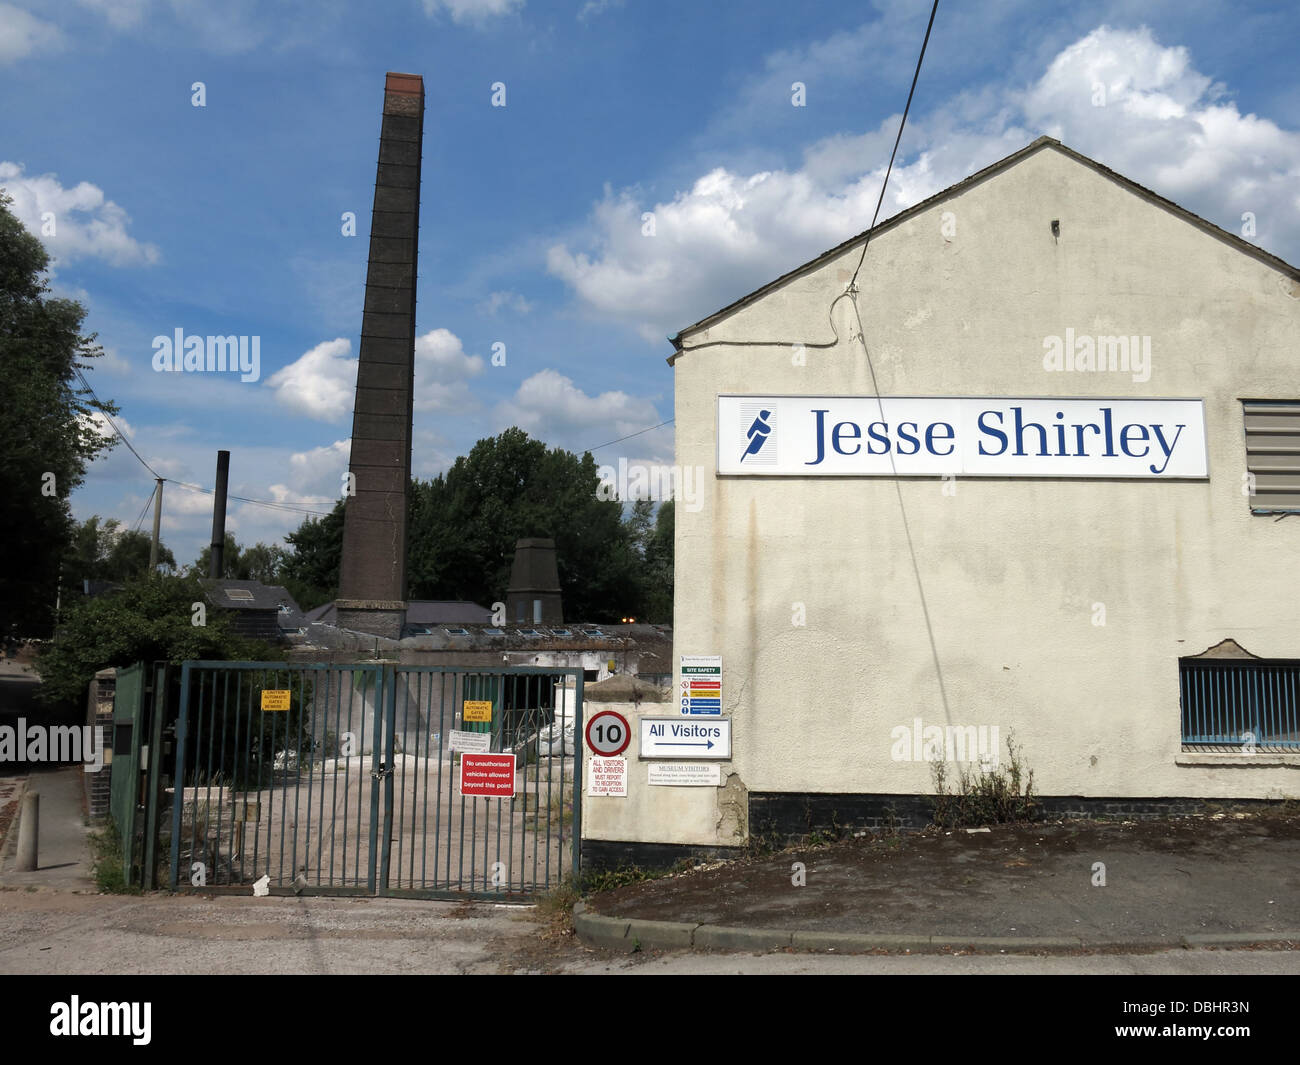 Jesse Shirley historic pottery firm whose company collapsed under crippling trading conditions in autumn 2011 - Stock Image